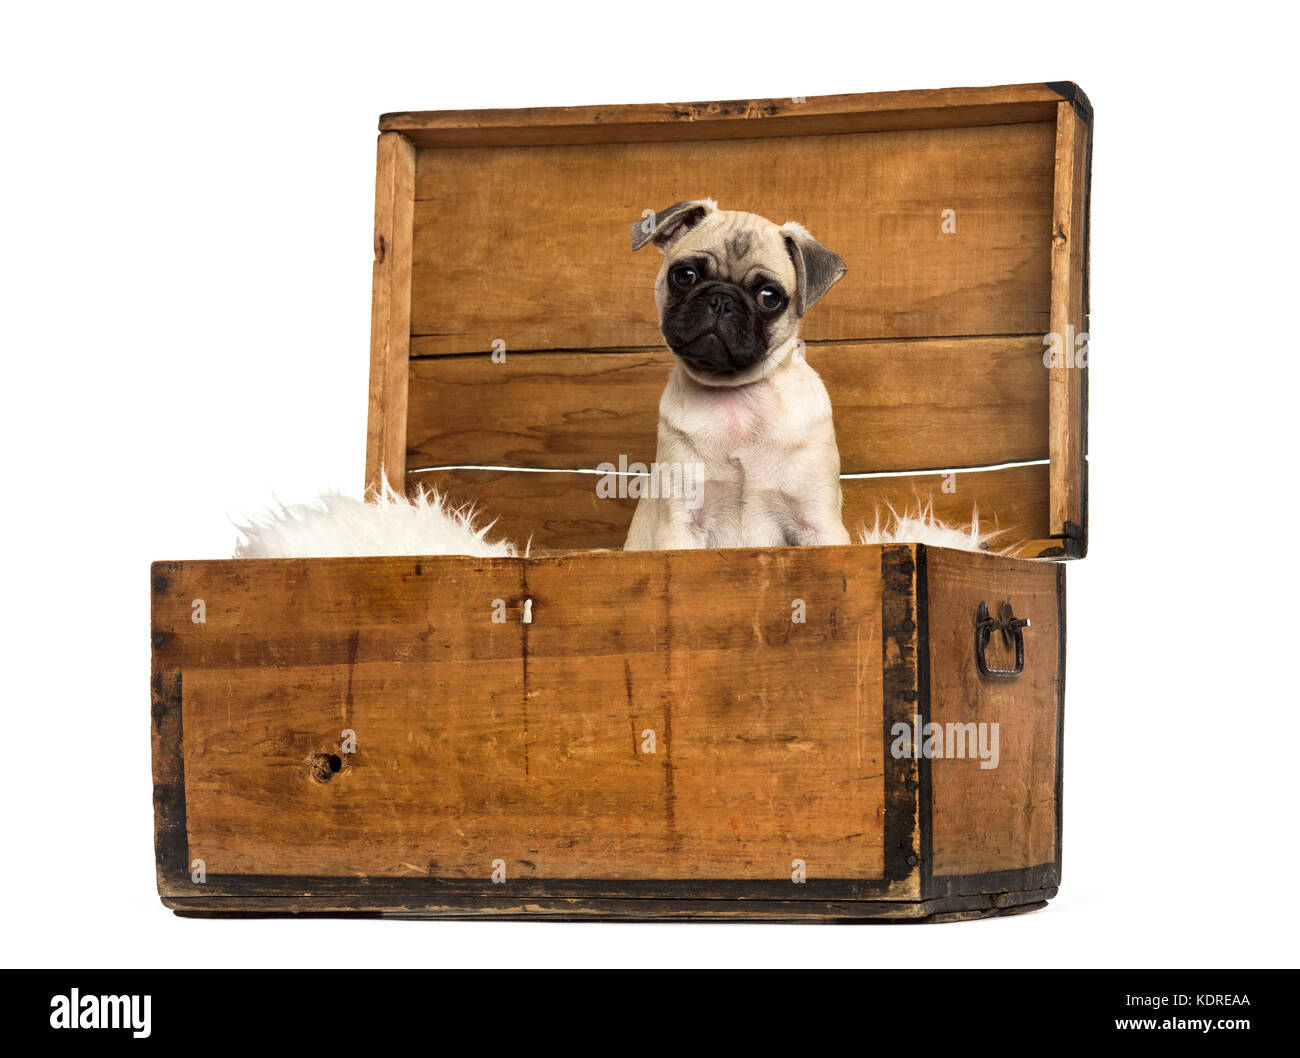 Pug sitting in a wooden chest, isolated on white - Stock Image